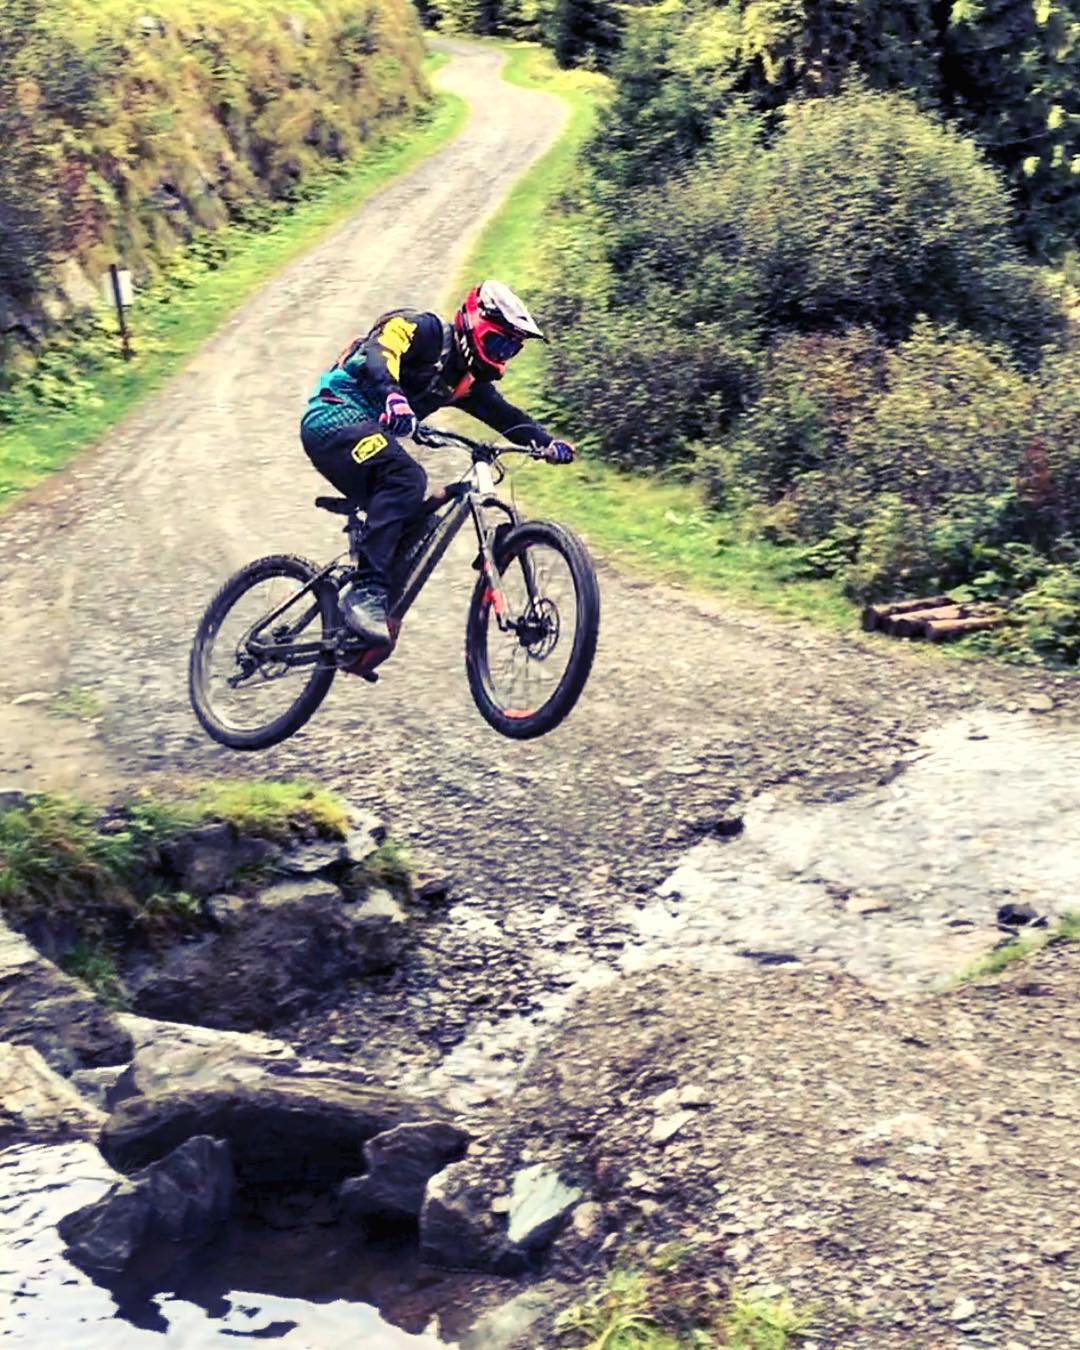 Little creek gap, hip jump thing we found in Saalbach. @derestricted sending it with @chris_ko19 getting the shot. We always discover a lot about what we do and don't like on the bikes when we ride them, but back to our day #design jobs tomorrow after a great team trip! #inspired #haibike #emtb #xduro #mtb #allmtn #ride100percent #rideordie